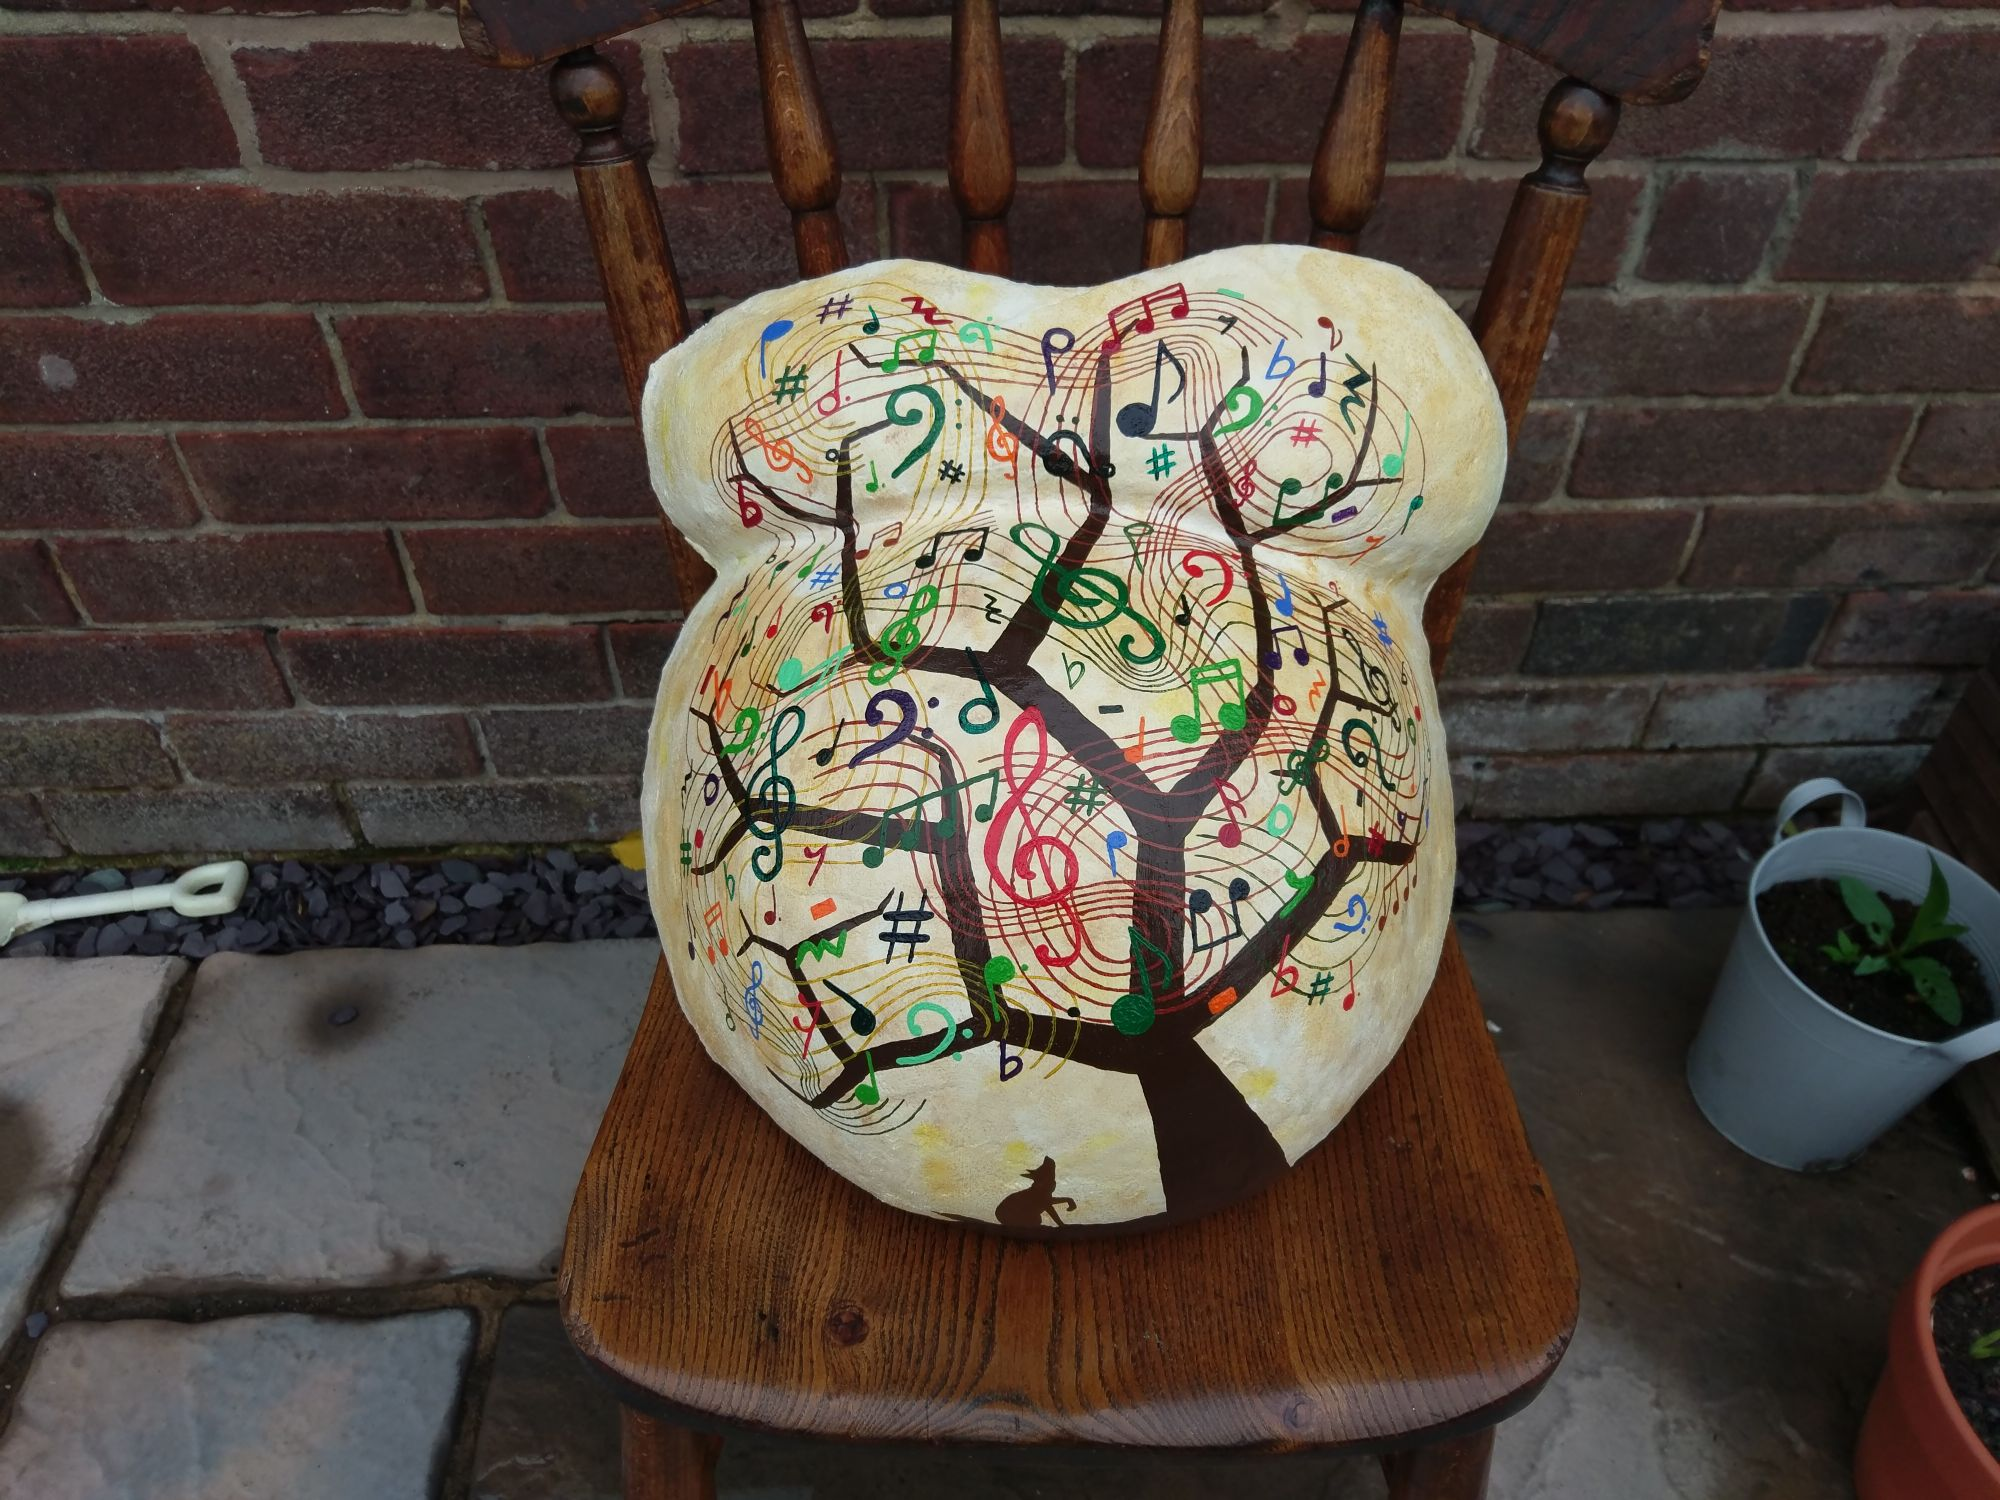 The finished cast on a chair. The tree is covered in musical notes, rests and clefs.